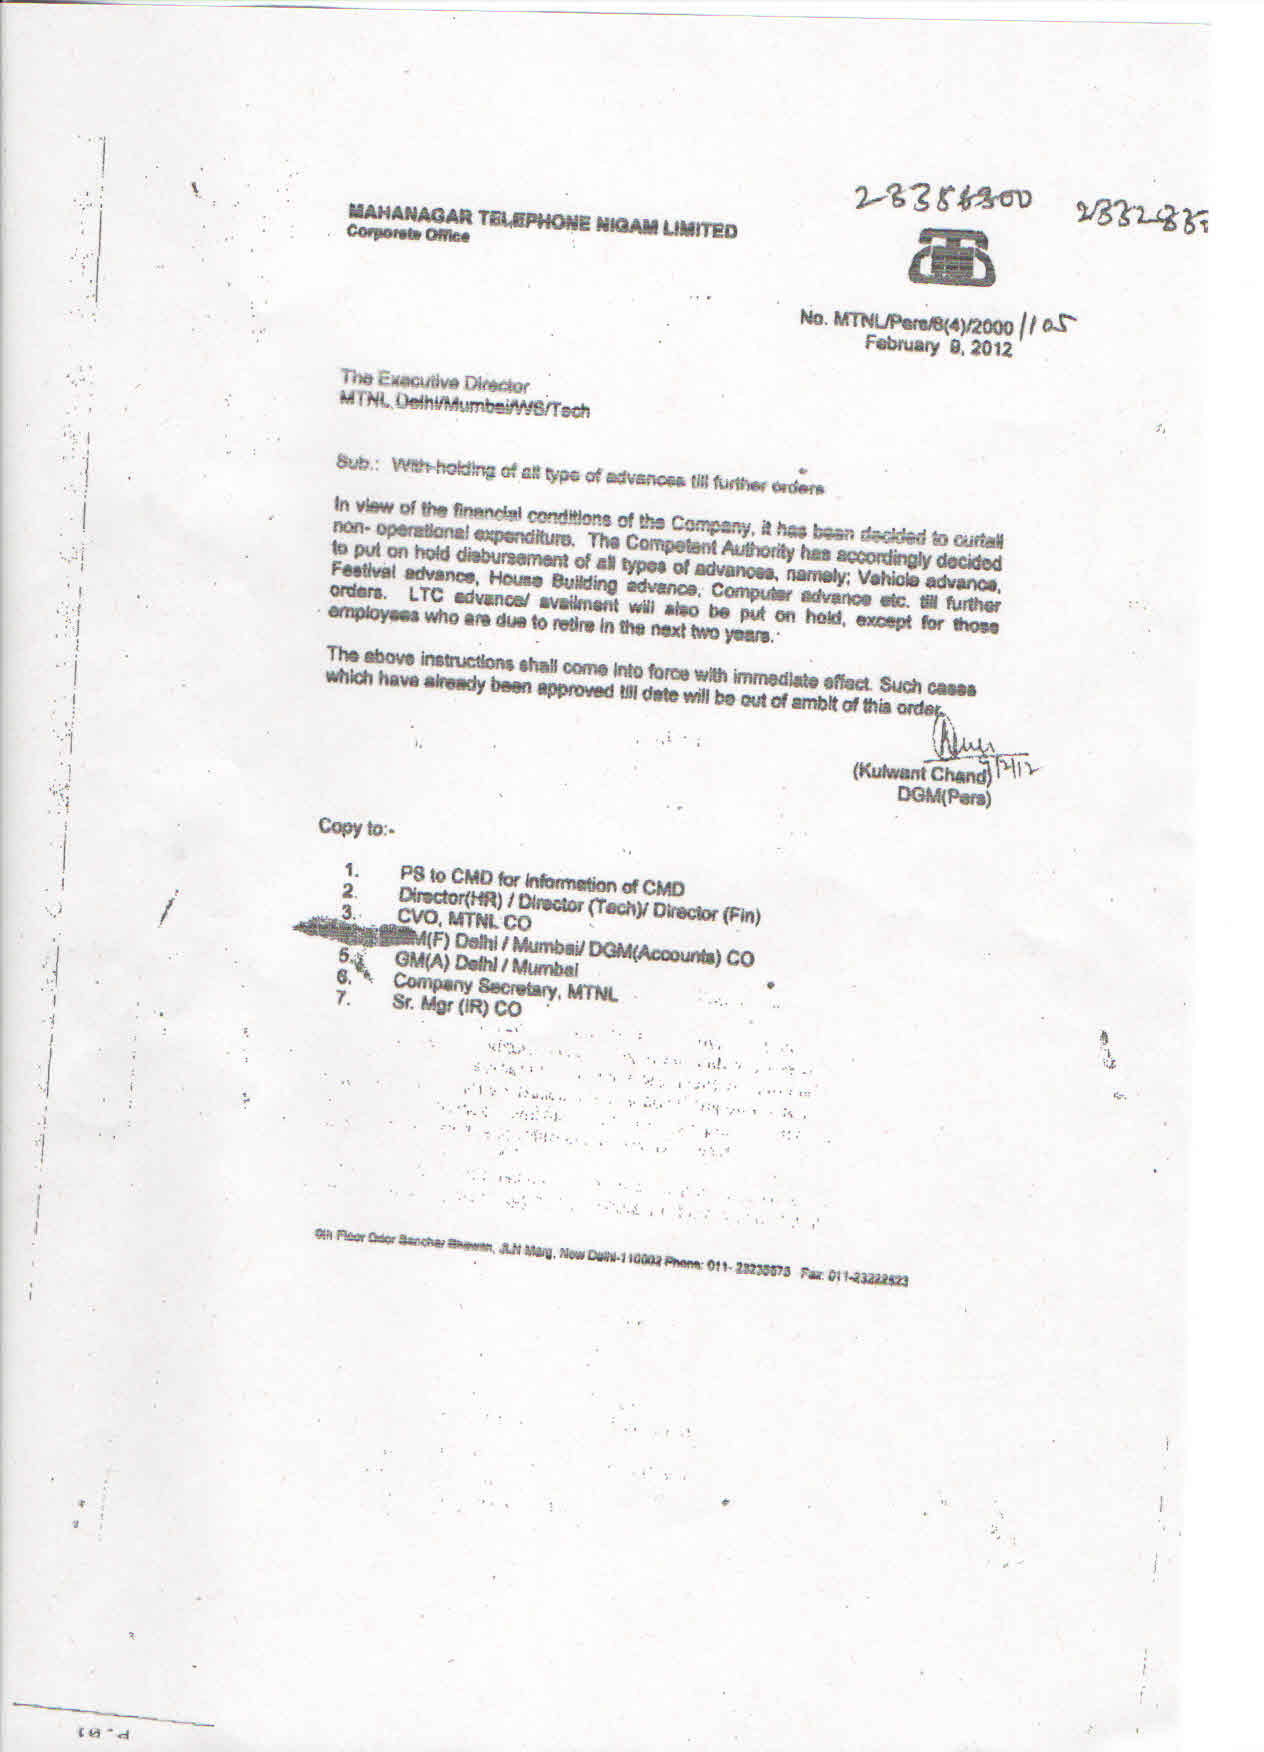 Complaint letter format to mtnl bsnl broadband cancellation letter format doc welcome to kannur experience sle choice bsnl broadband cancellation letter format doc 28 images spiritdancerdesigns Images